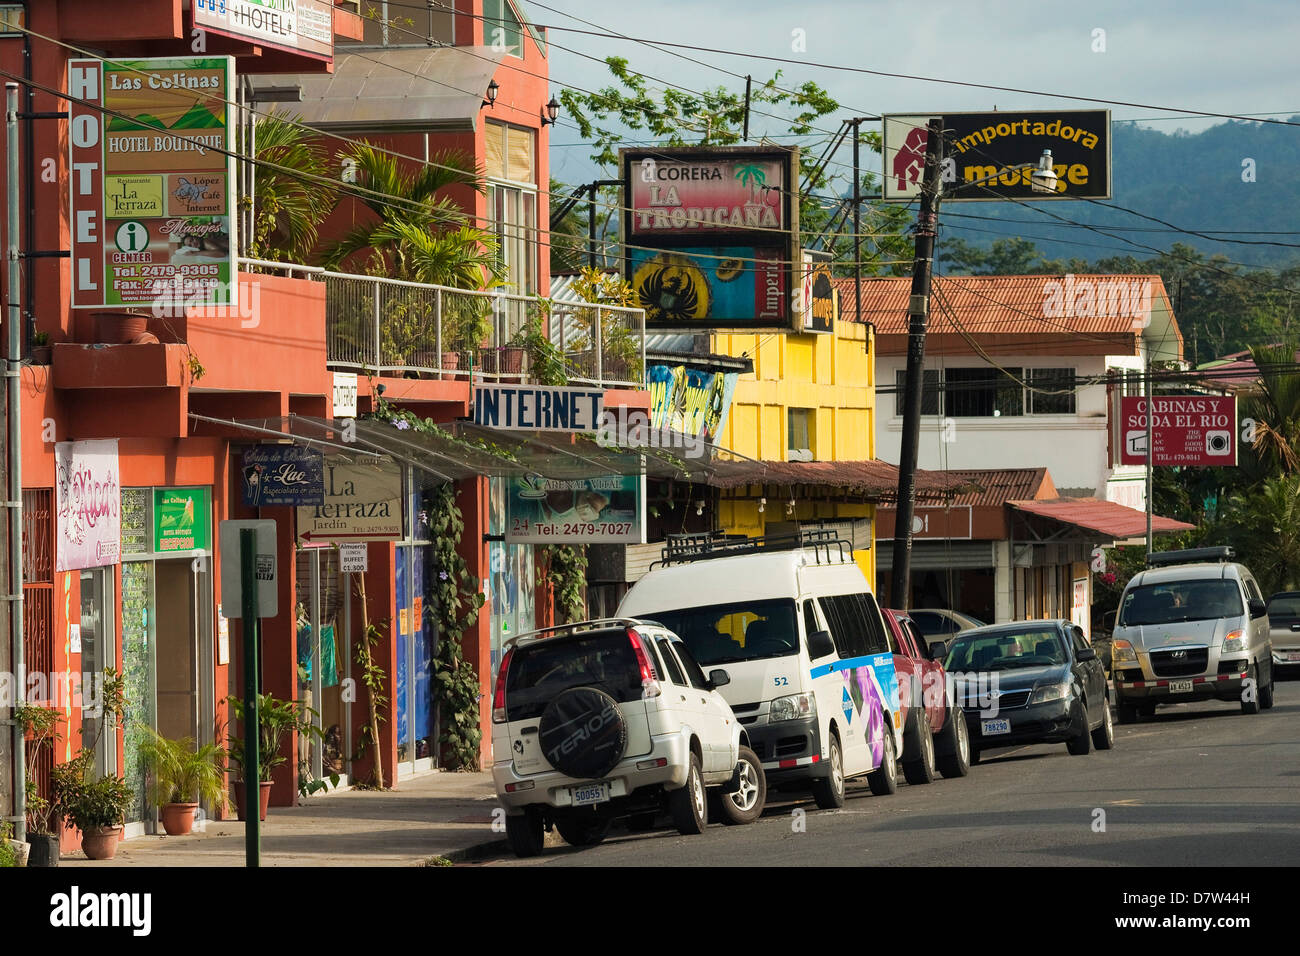 Centre of town and hub for tourist activities near hot springs and Arenal Volcano, La Fortuna, Alajuela Province, - Stock Image